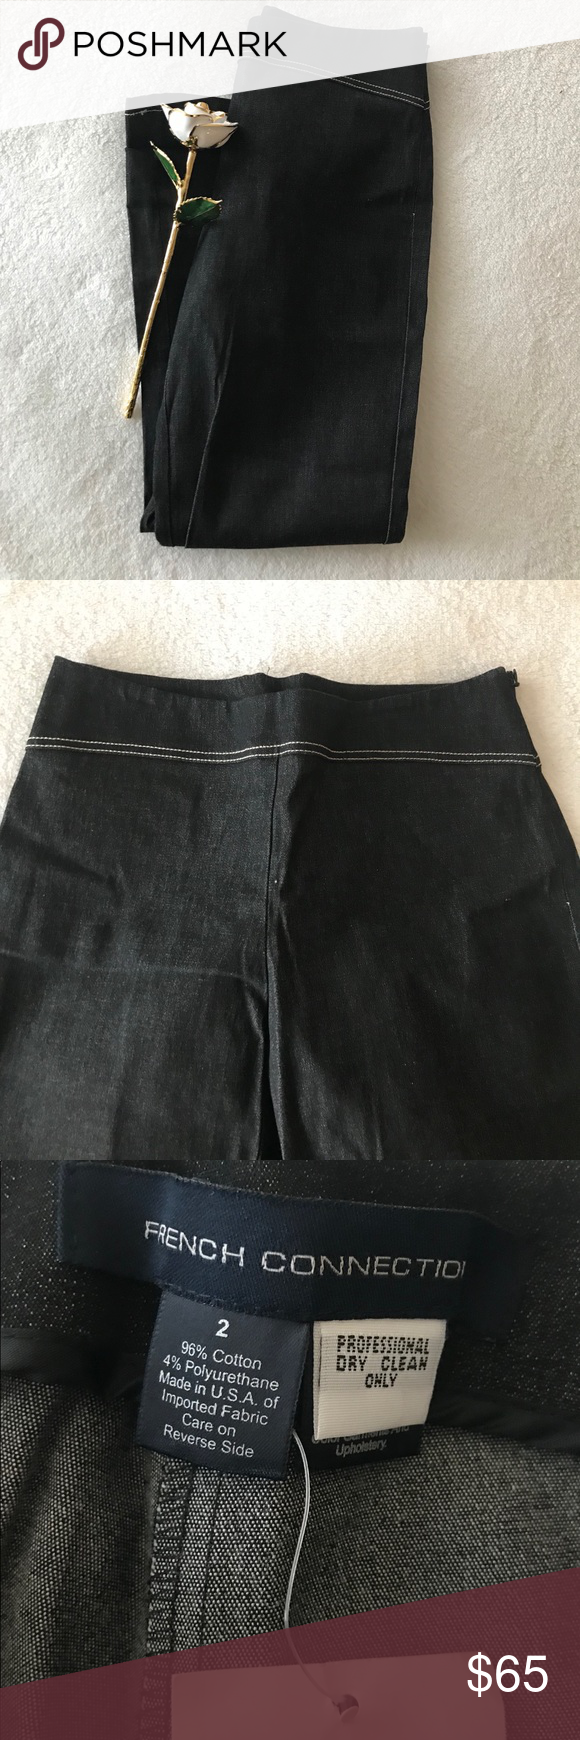 600b8ea52d French Connection Pants Size 2, never worn, comes with original tag. Fabric  96% cotton 4% polyurethane. Color Charcoal. Made in USA 🇺🇸 Waist 27.5  inches ...